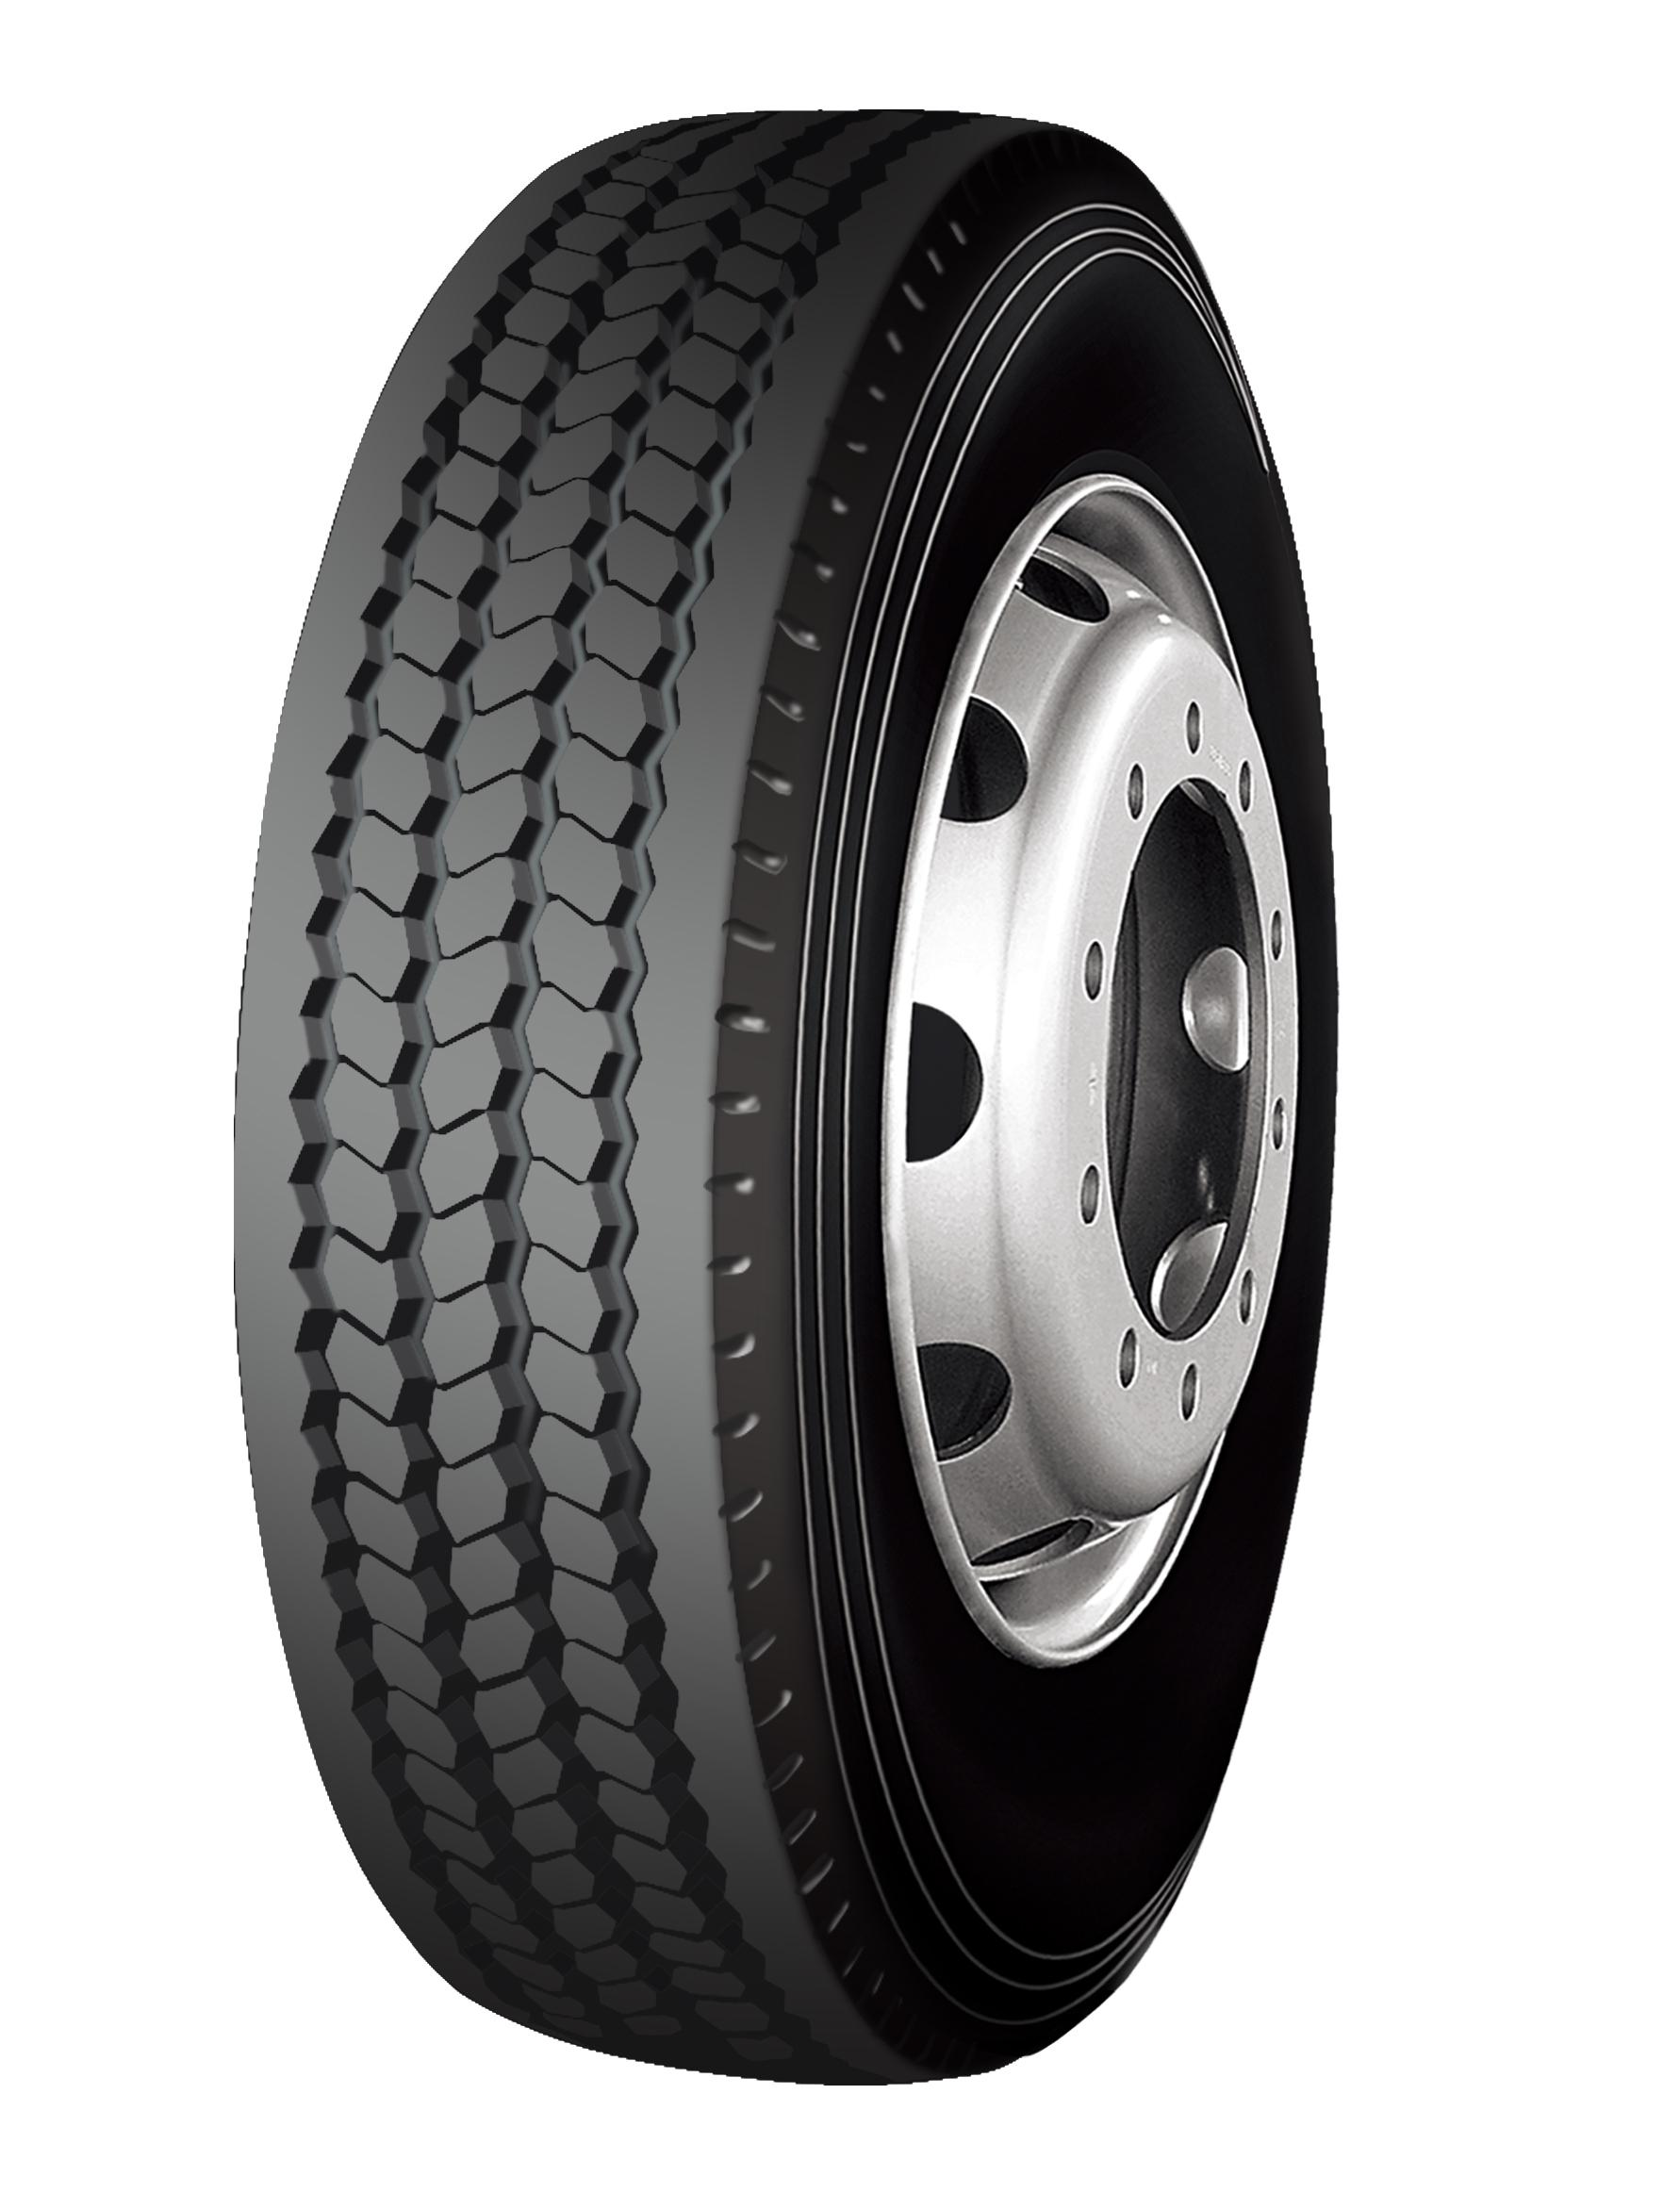 LM135 ALL STEEL RADIAL TRUCK AND BUS TYRES